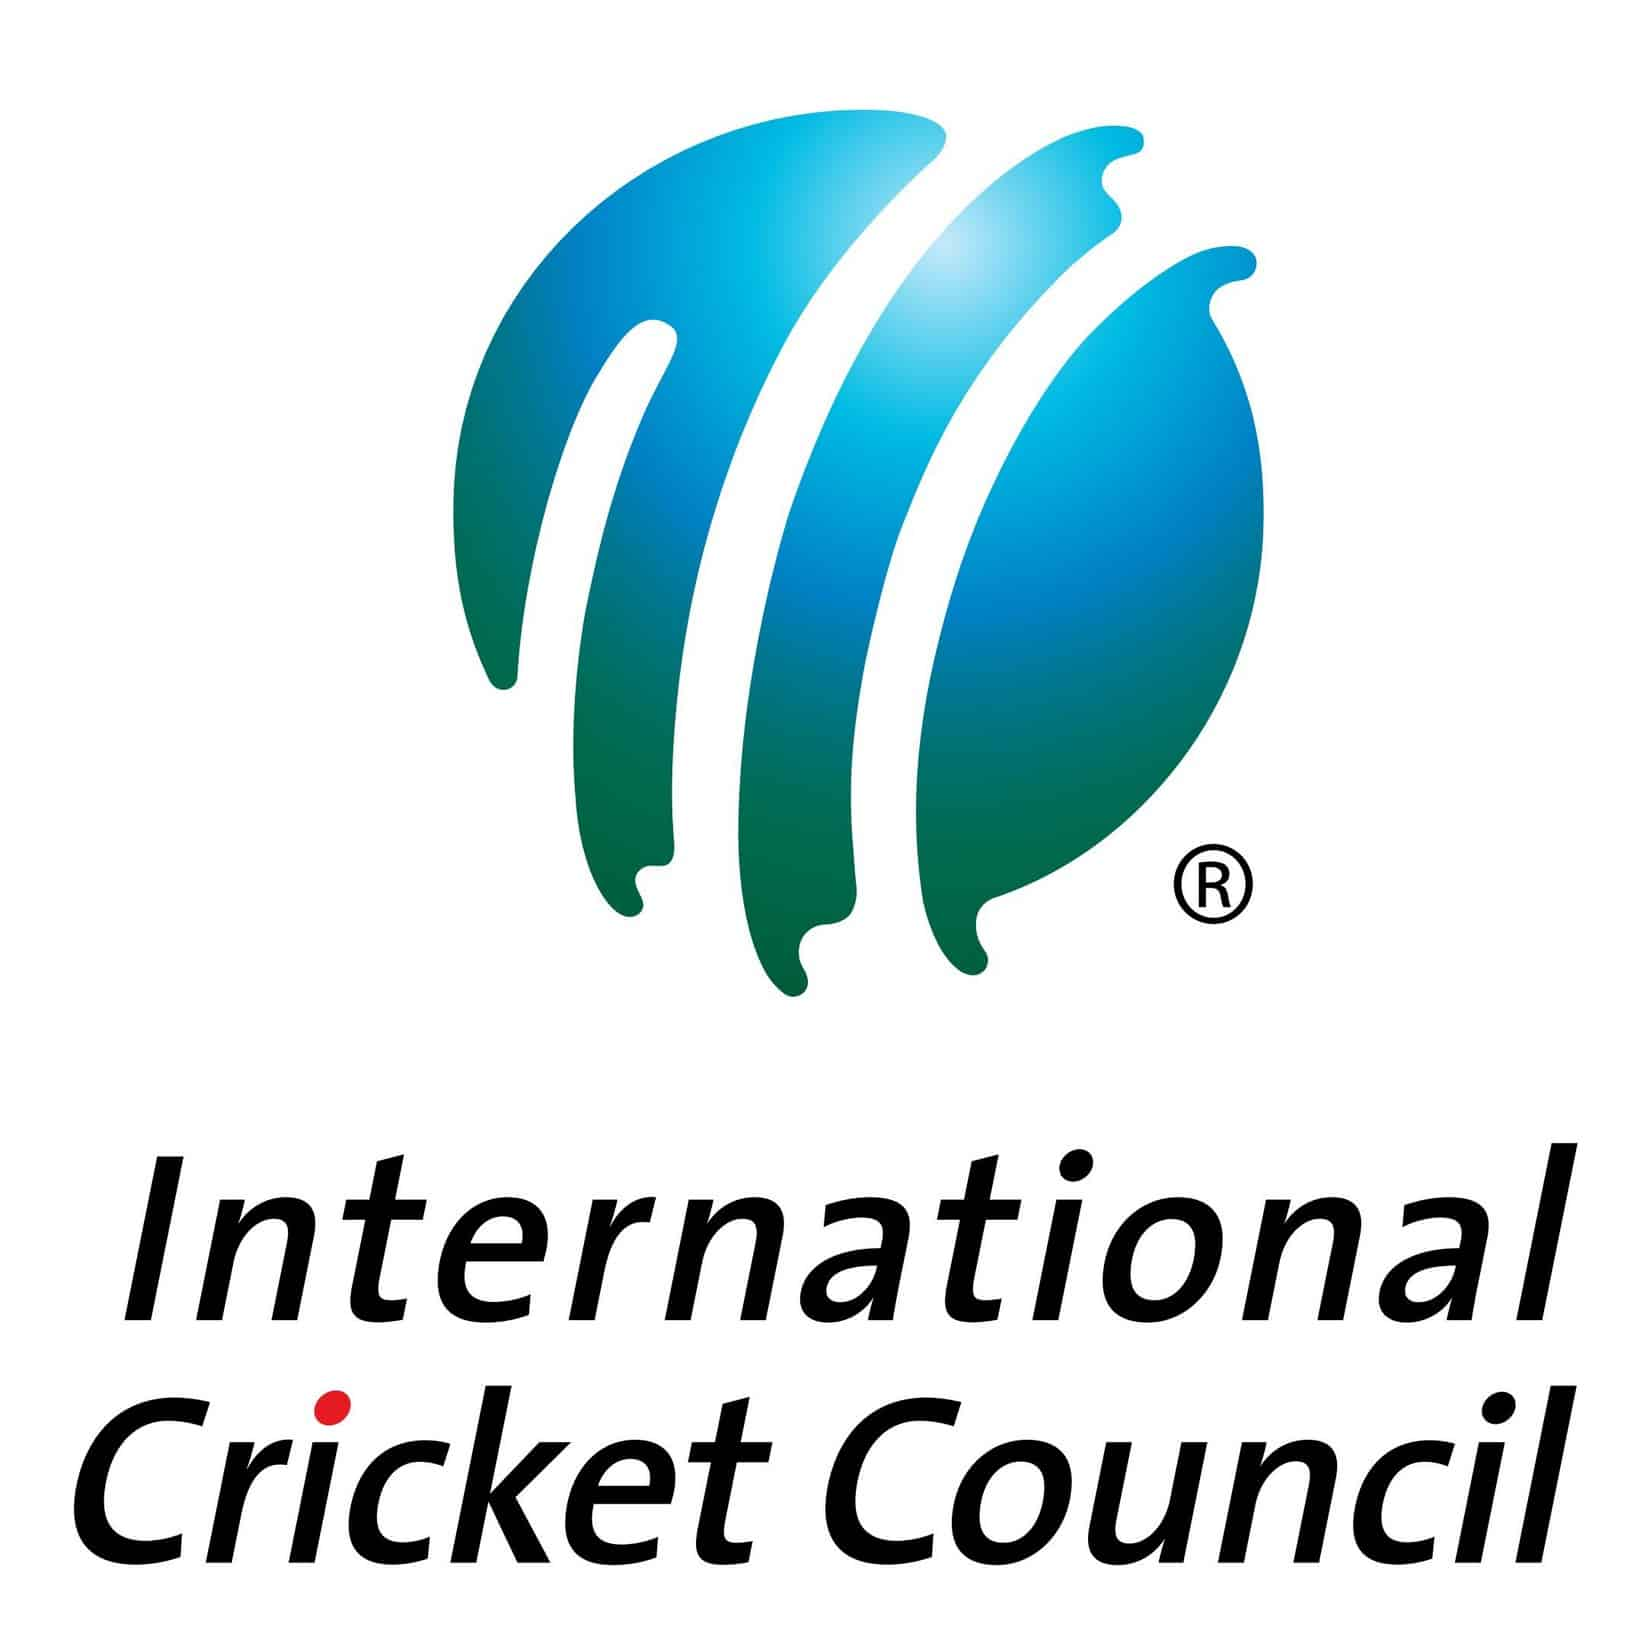 ICC International Cricket Council logo